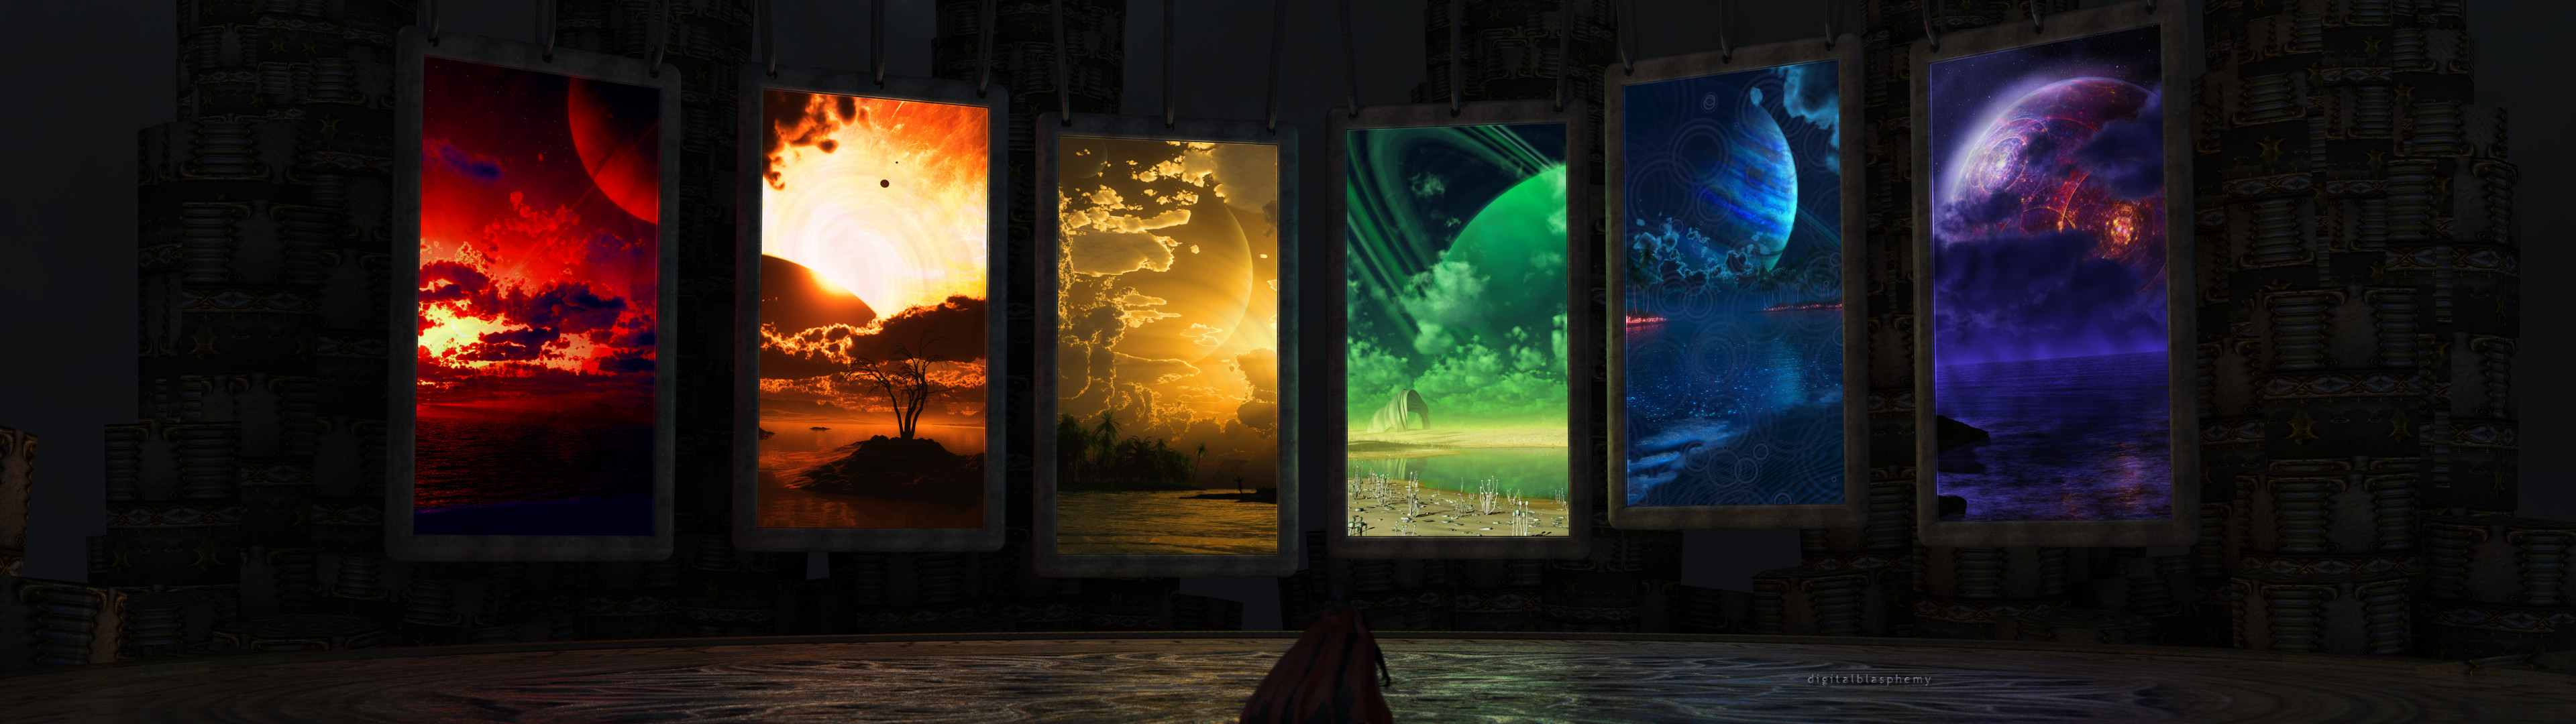 … multi monitor wallpapers hd pic; dual monitor clipart  collection …